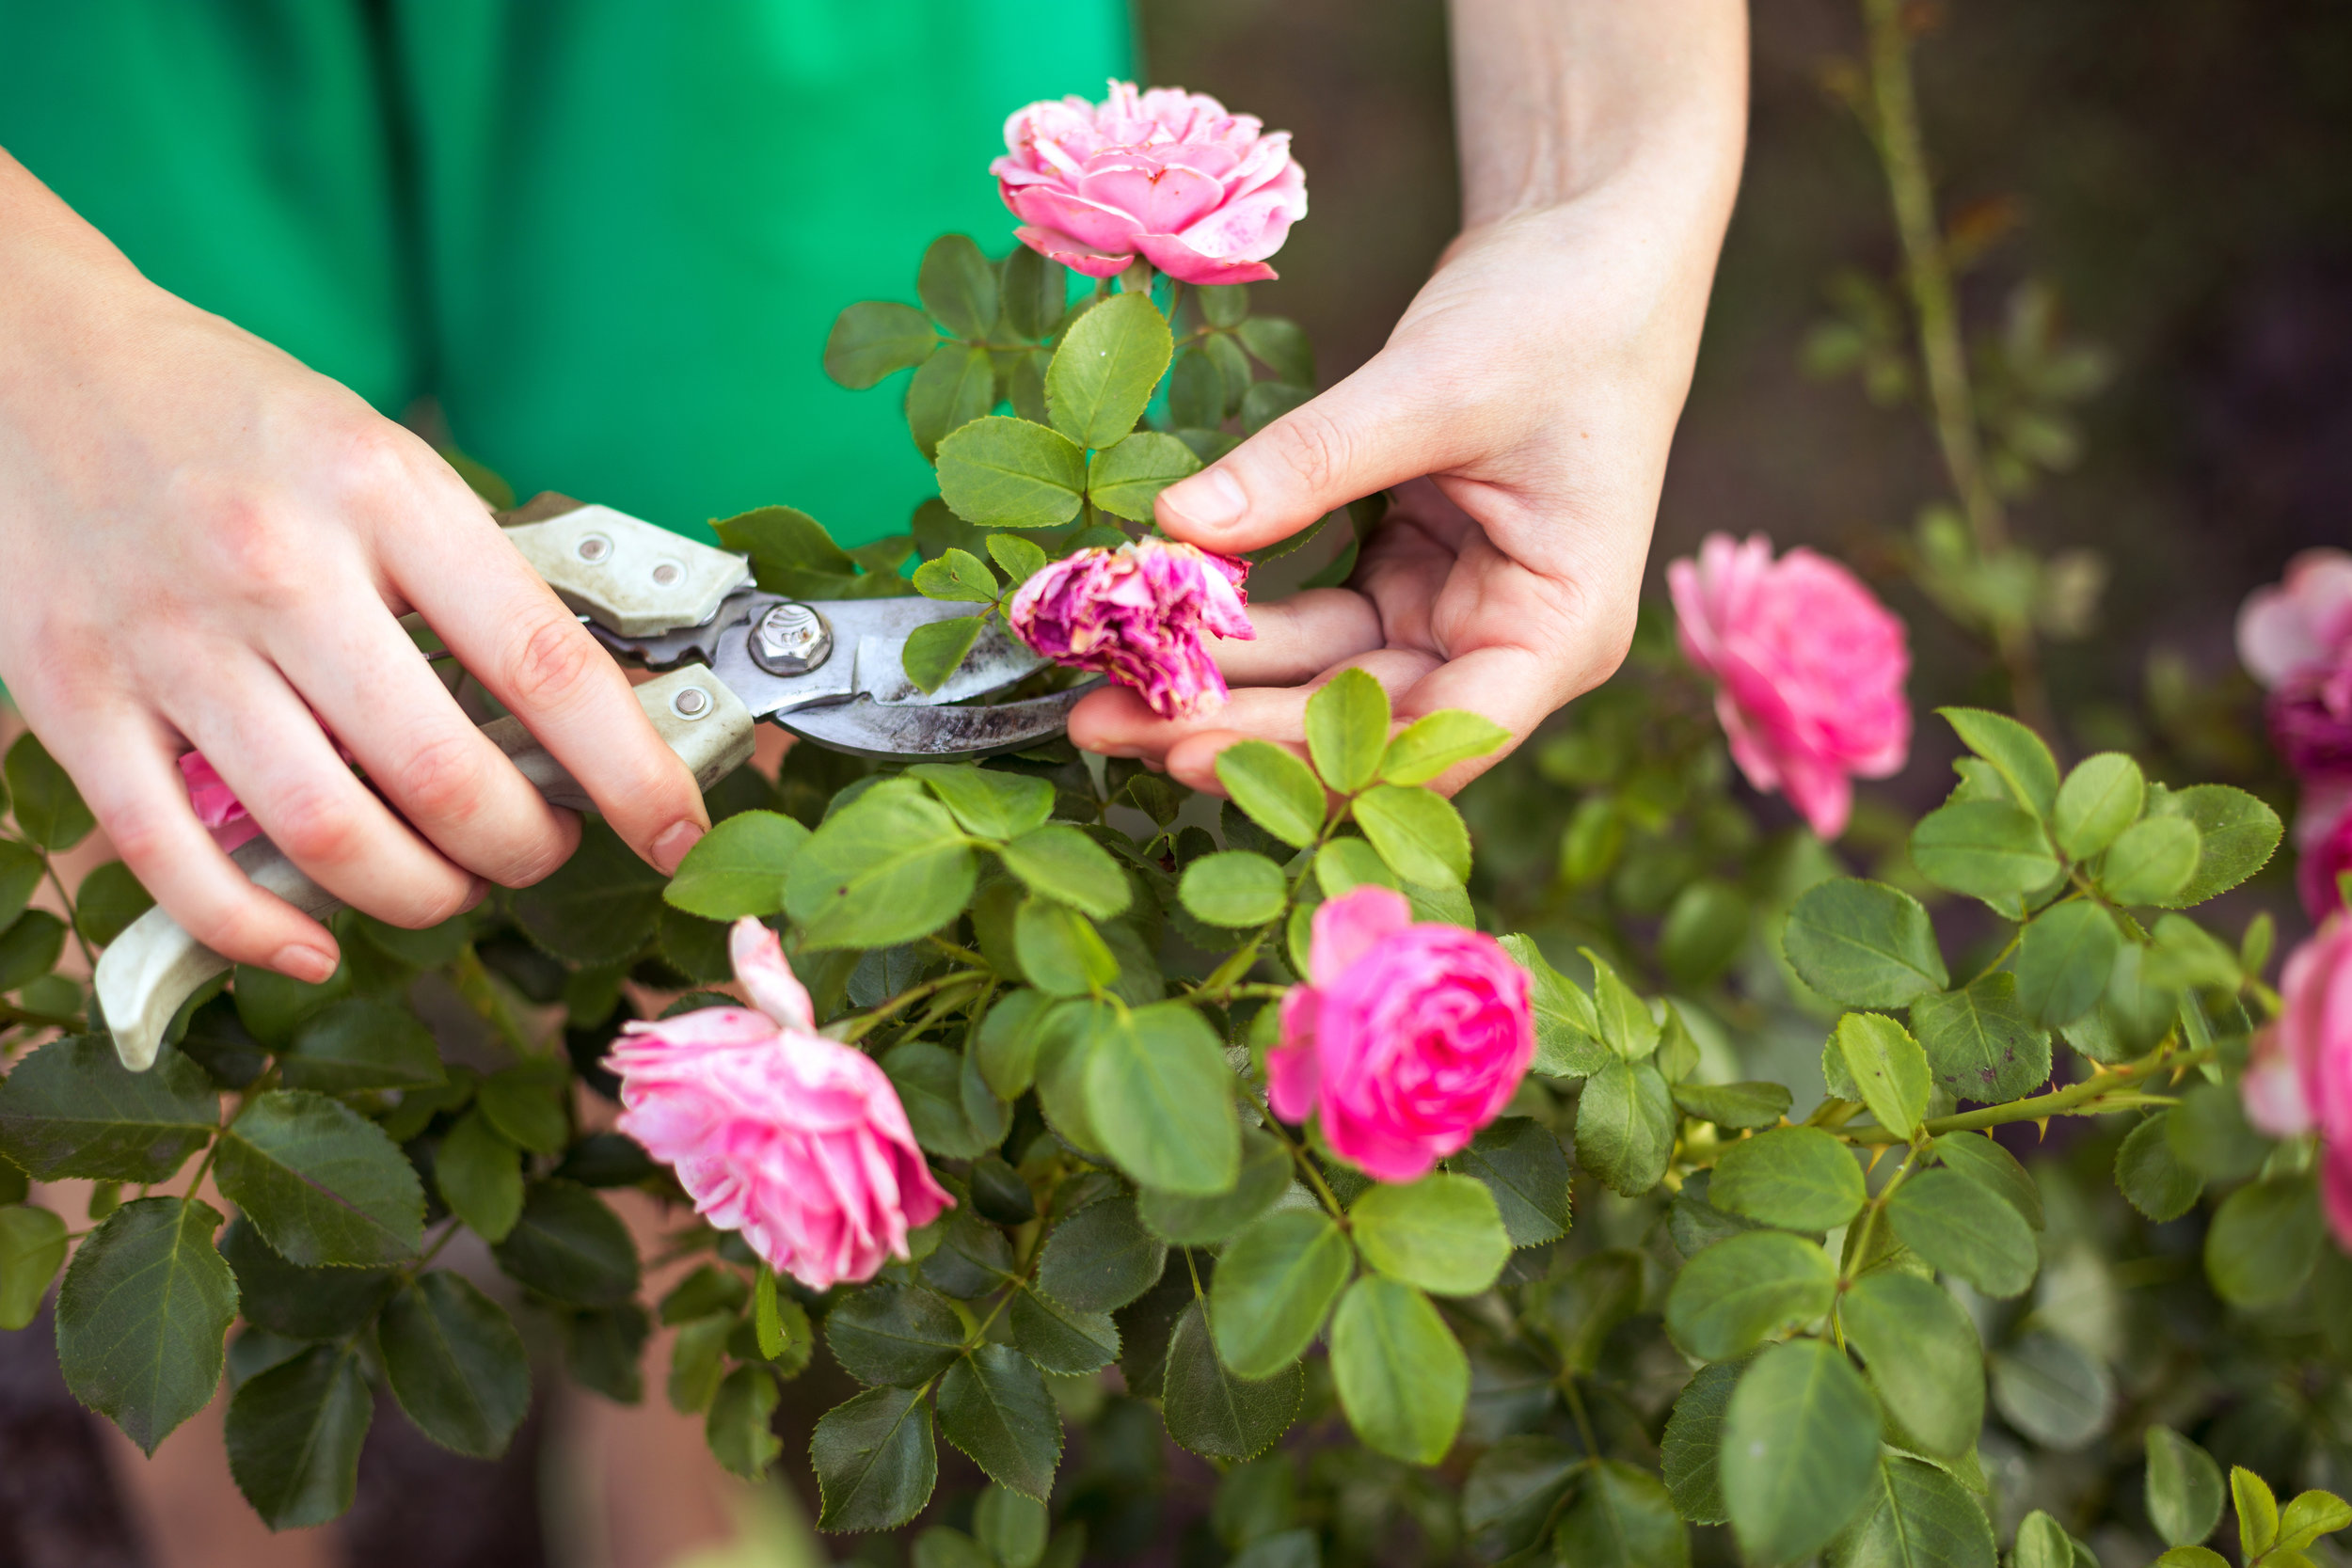 IT'S TIME TO PRUNE BLOOMS AND CONTROL PESTS! -